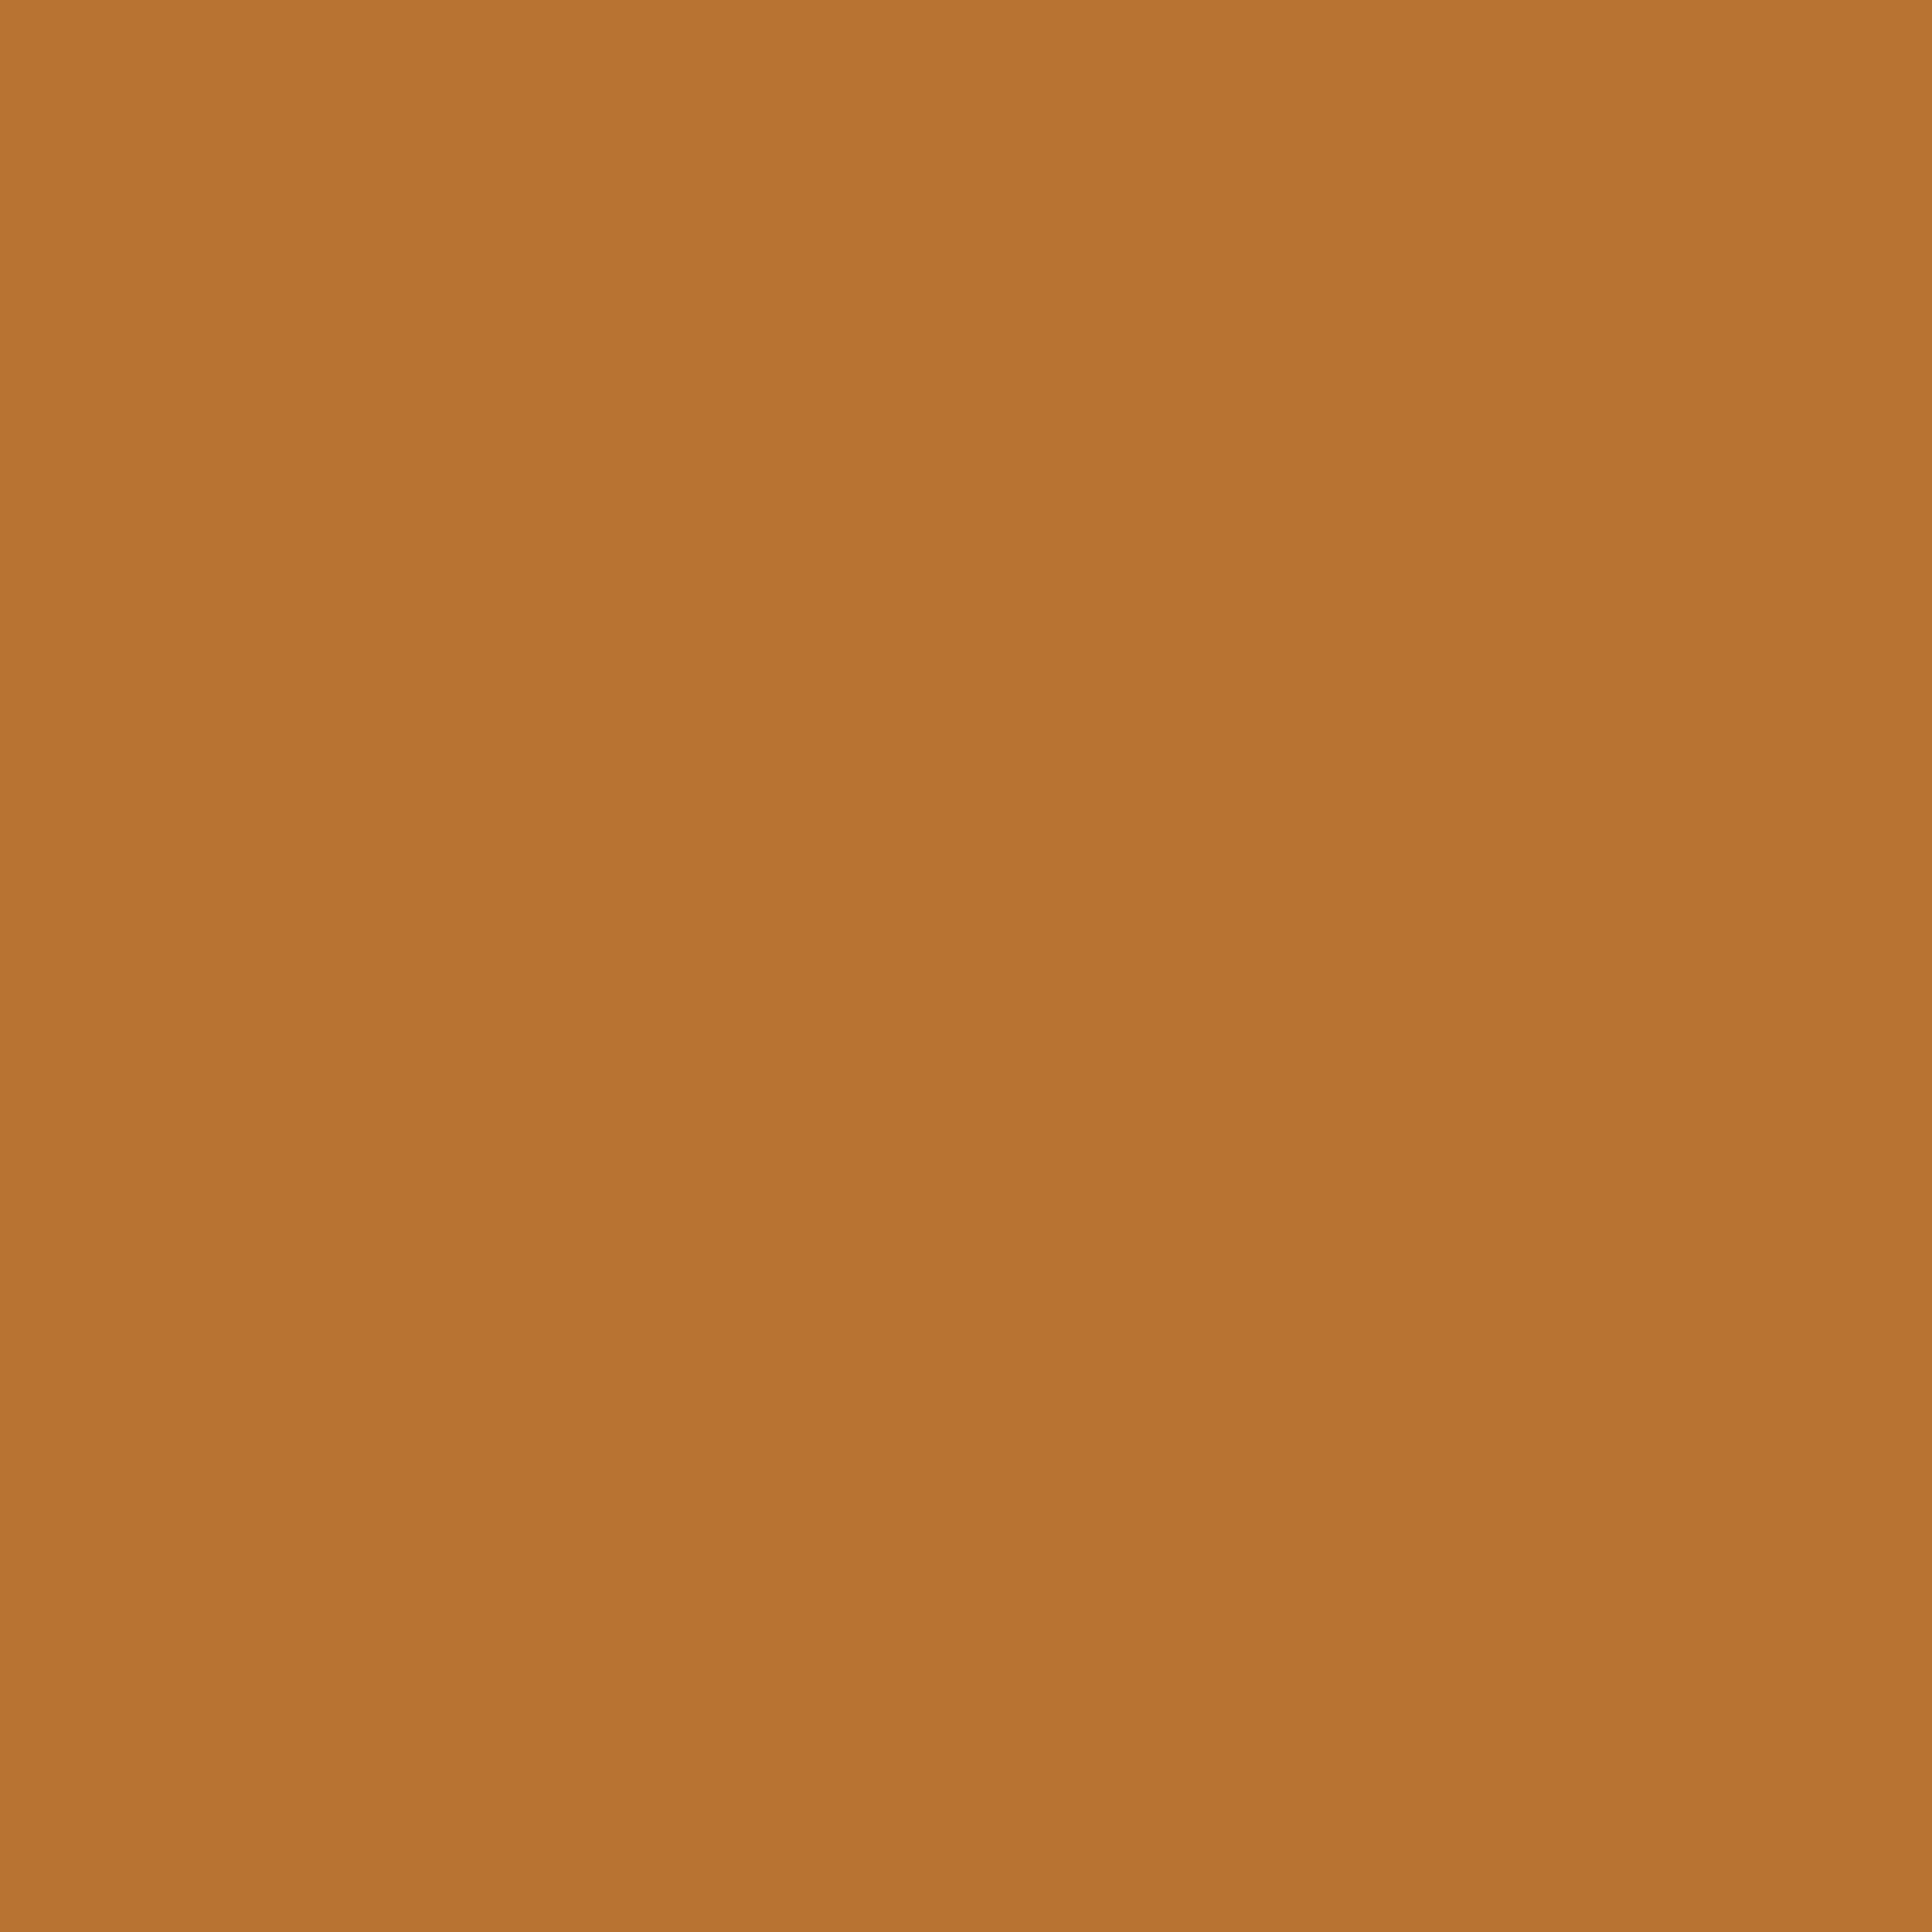 2732x2732 Copper Solid Color Background